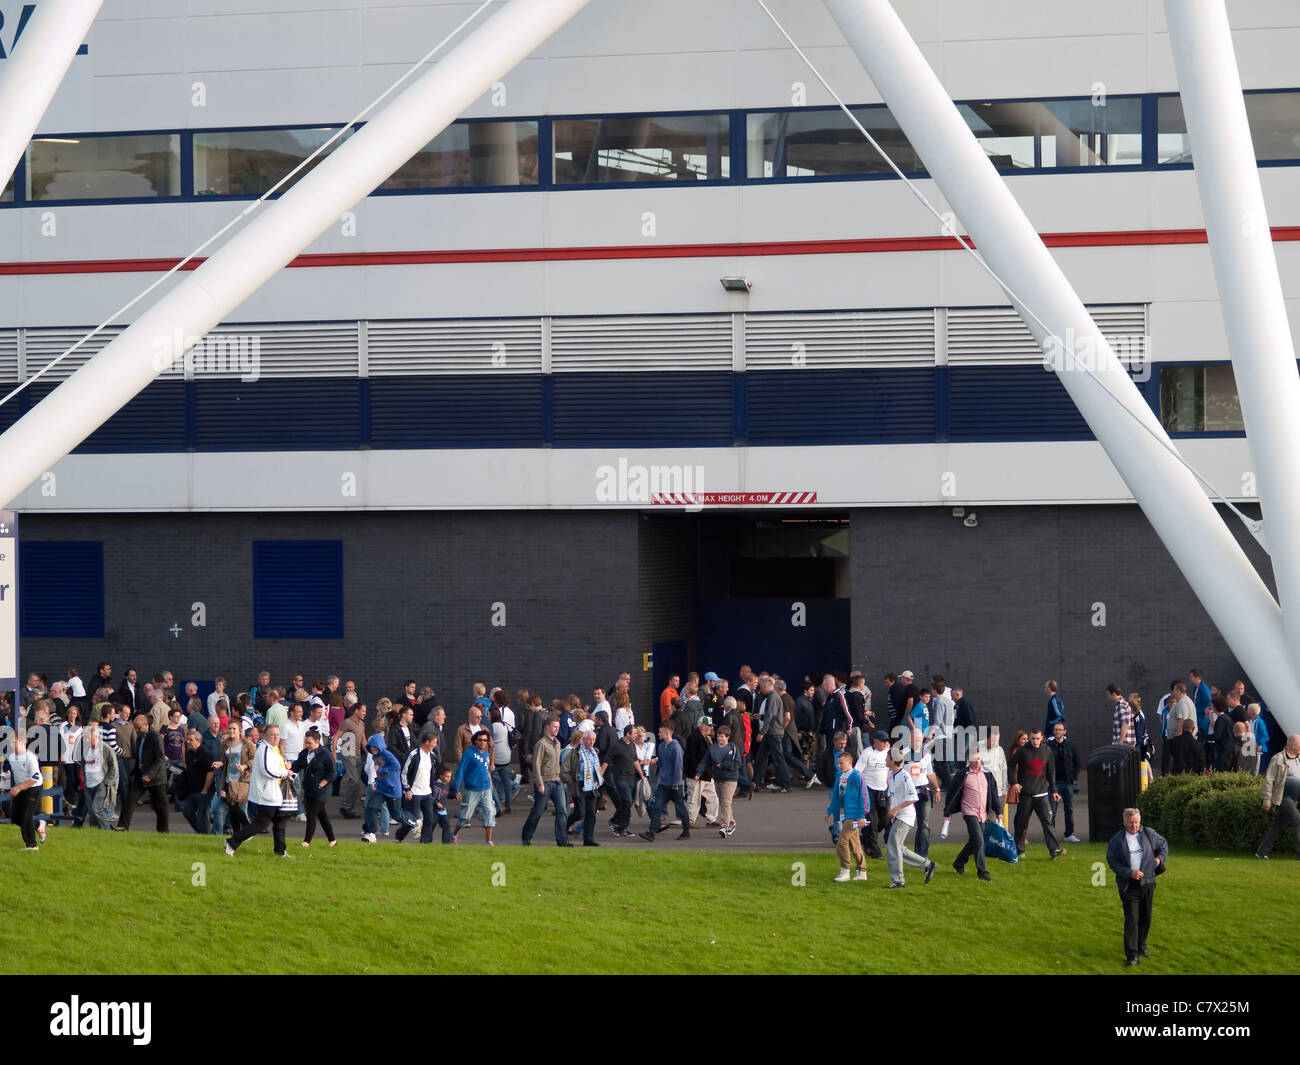 Fans leaving the Reebok Stadium, the home ground of Bolton Wanderers at the end of the game. - Stock Image